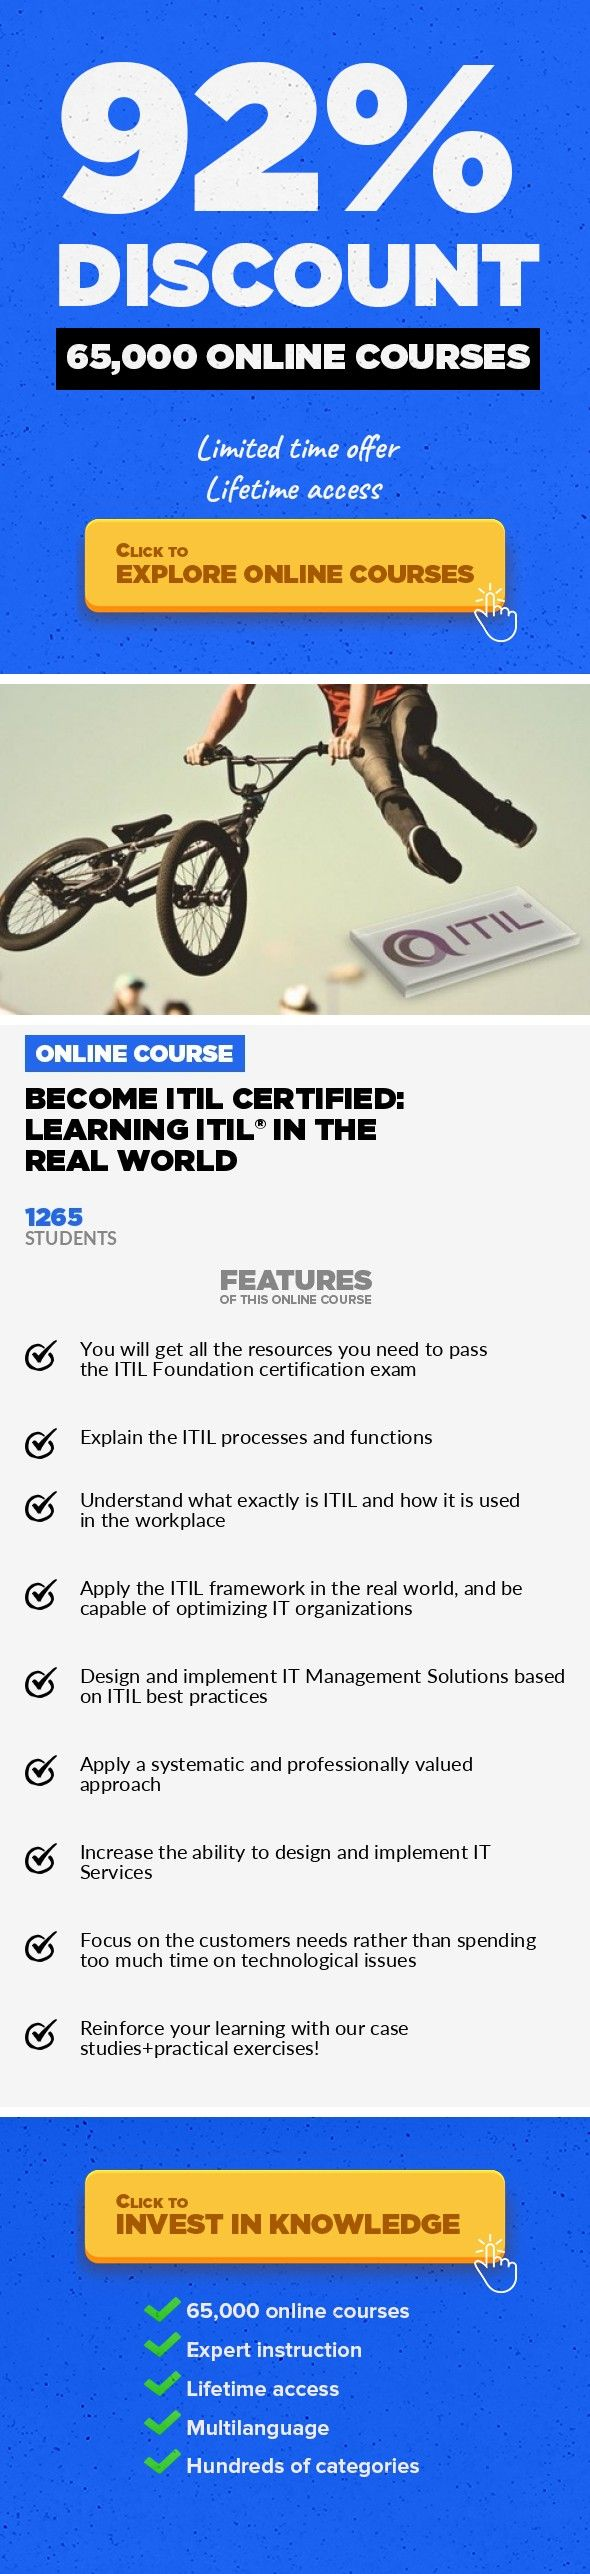 Become Itil Certified Learning Itil In The Real World It